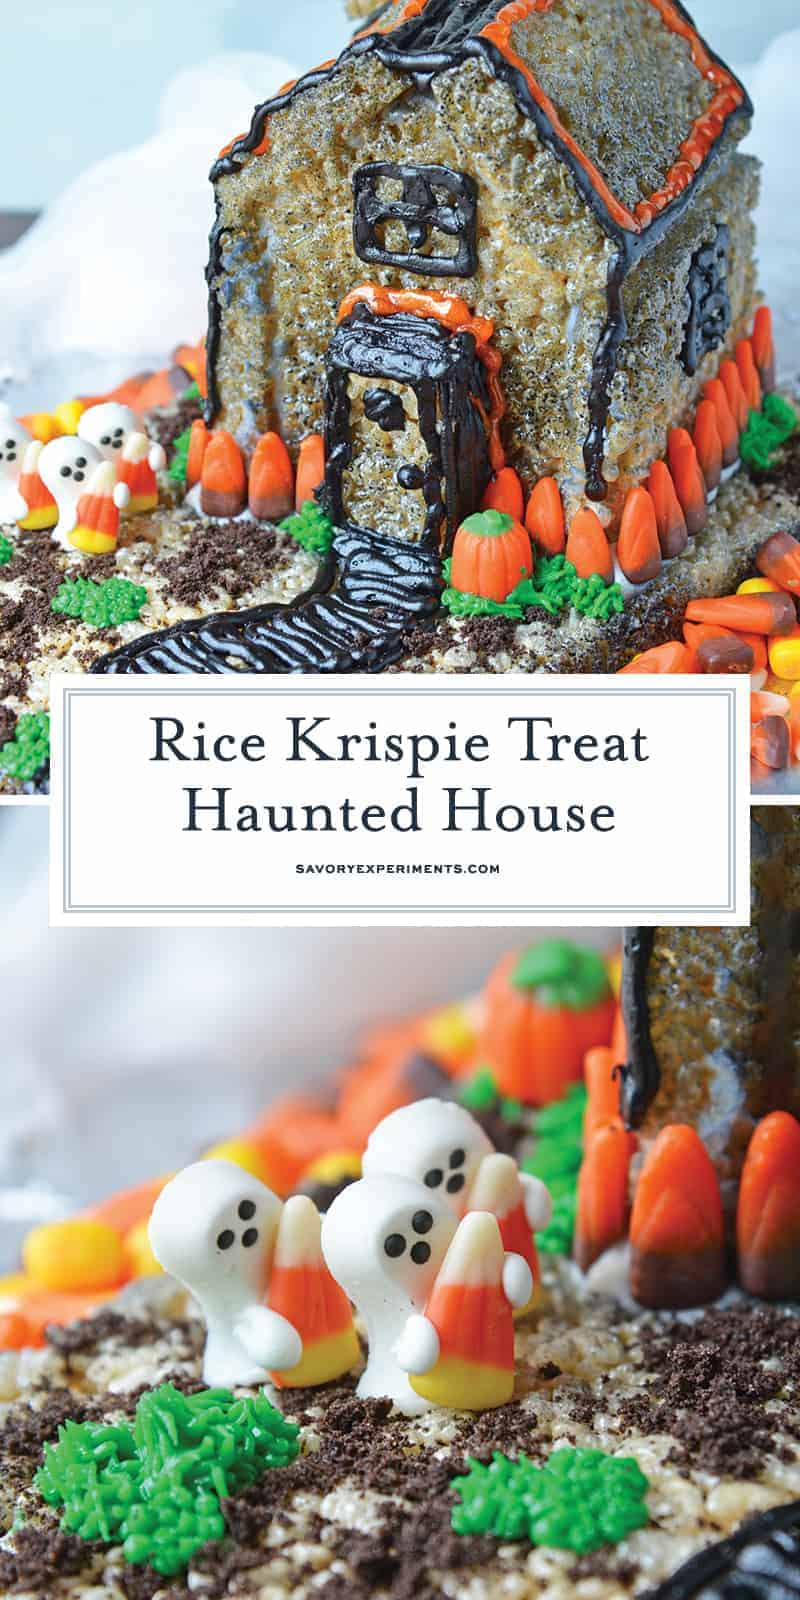 With this Rice Krispie Treat house template, you can make an adorable haunted house to display and then eat. Similar to a gingerbread house, this is part Halloween craft and party Halloween dessert. Fun and easy! #hauntedhouse #halloweendesserts www.savoryexperiments.com